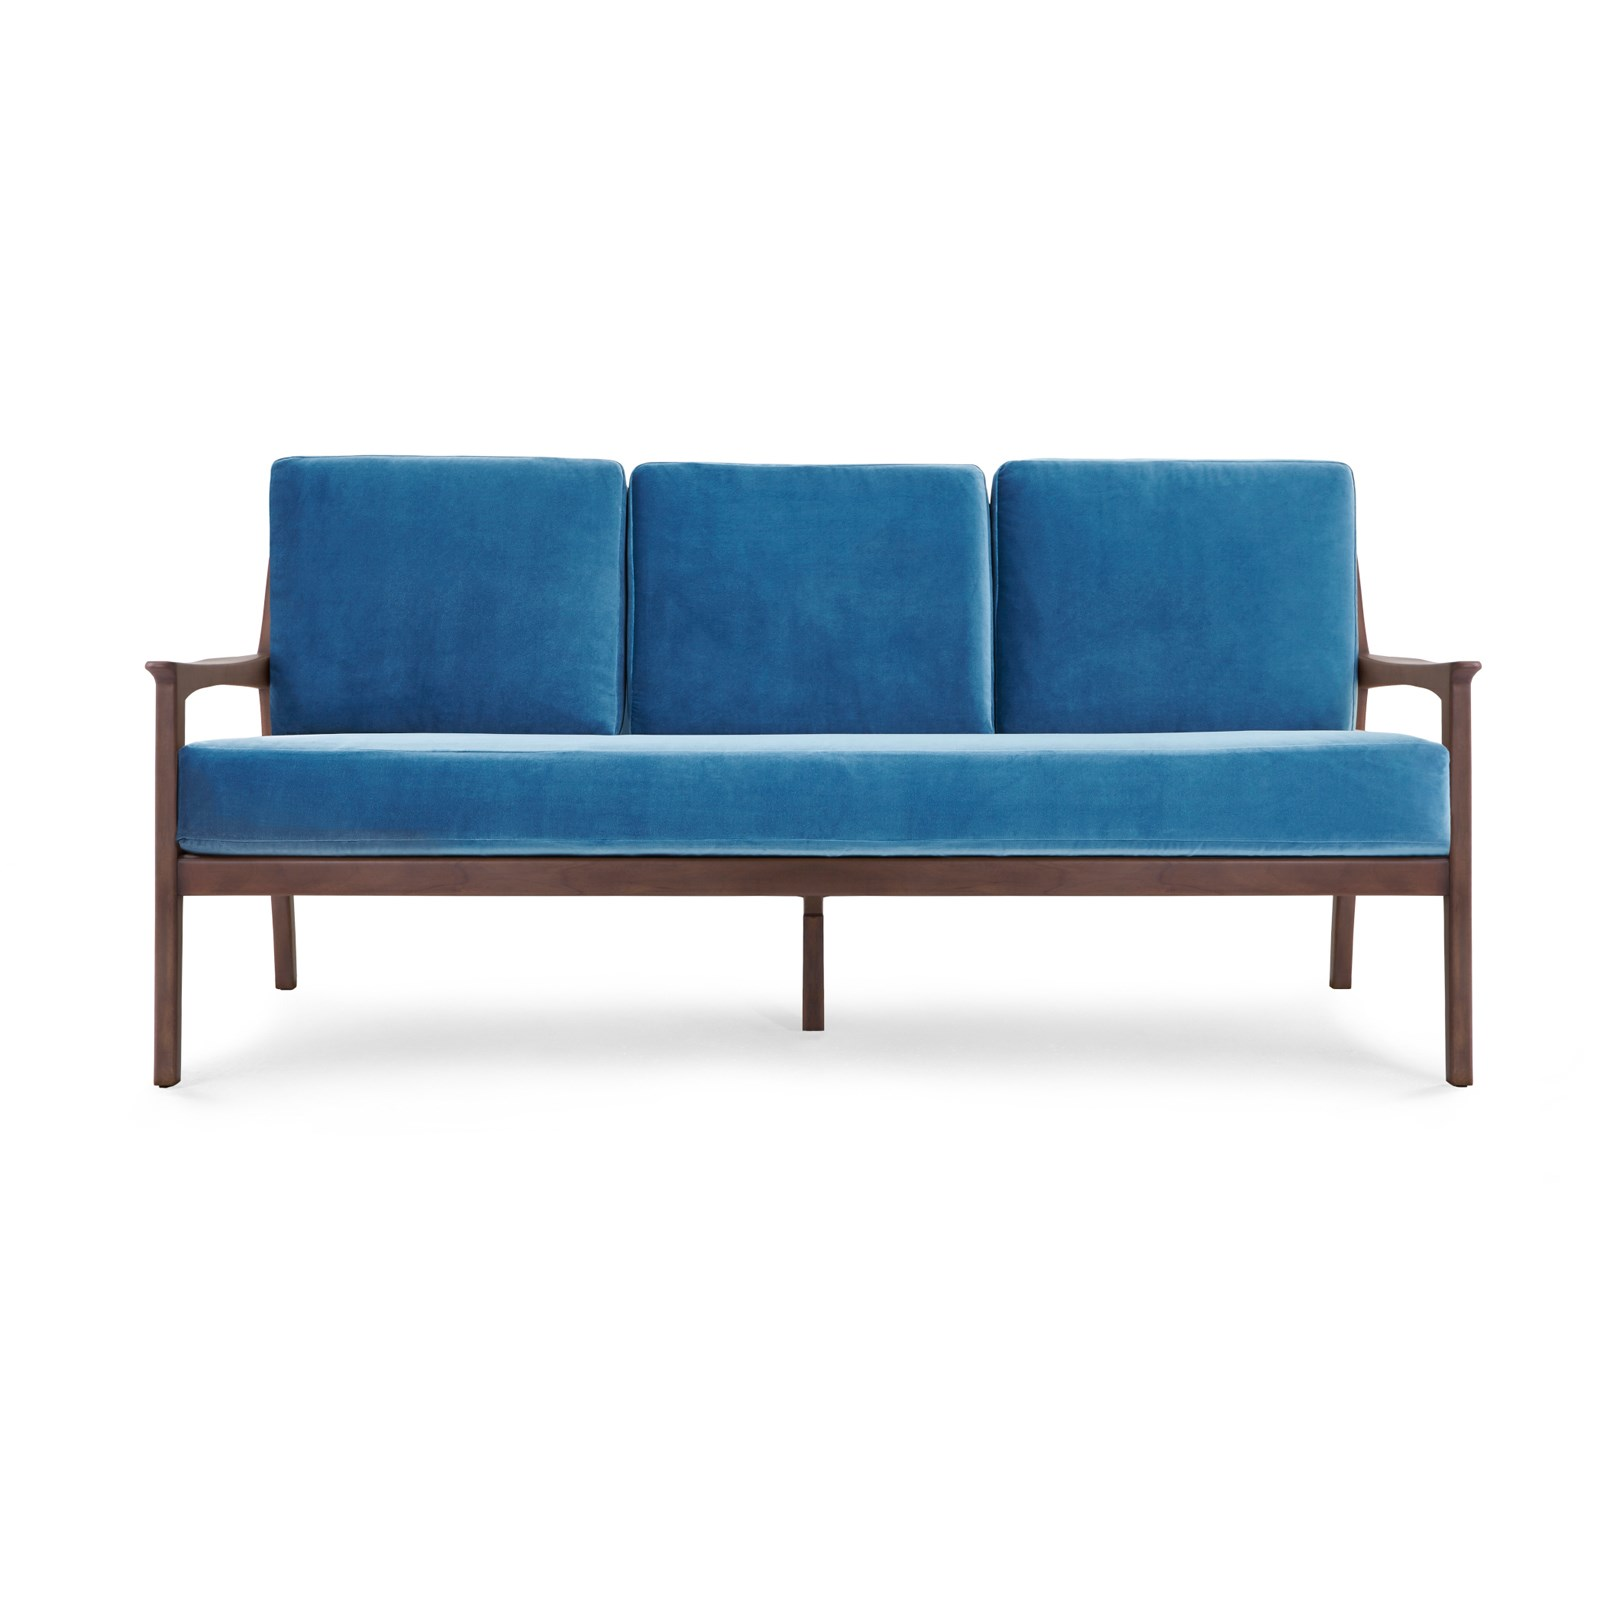 Teal couch low sofas height 38 brilliant floor level sofa for Floor level sofa